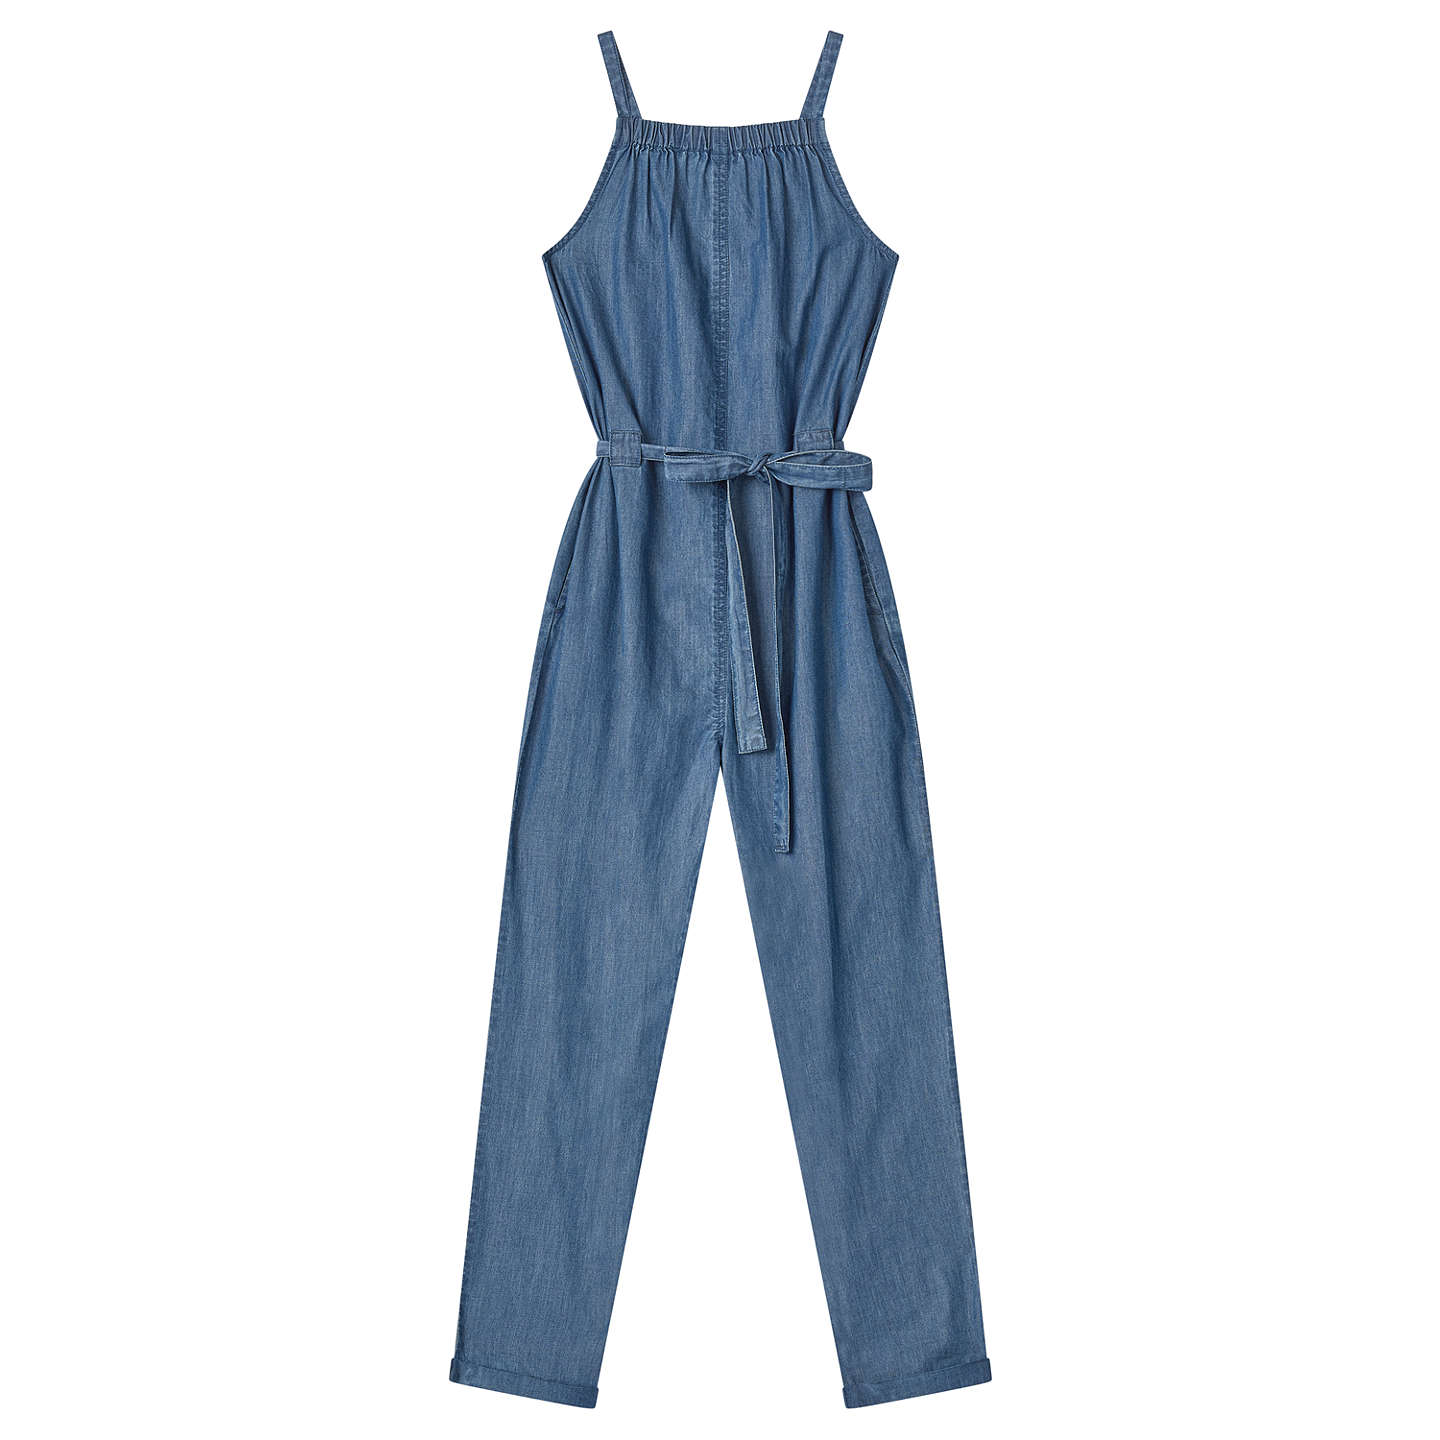 John Lewis Girls' Chambray Jumpsuit, Blue by John Lewis